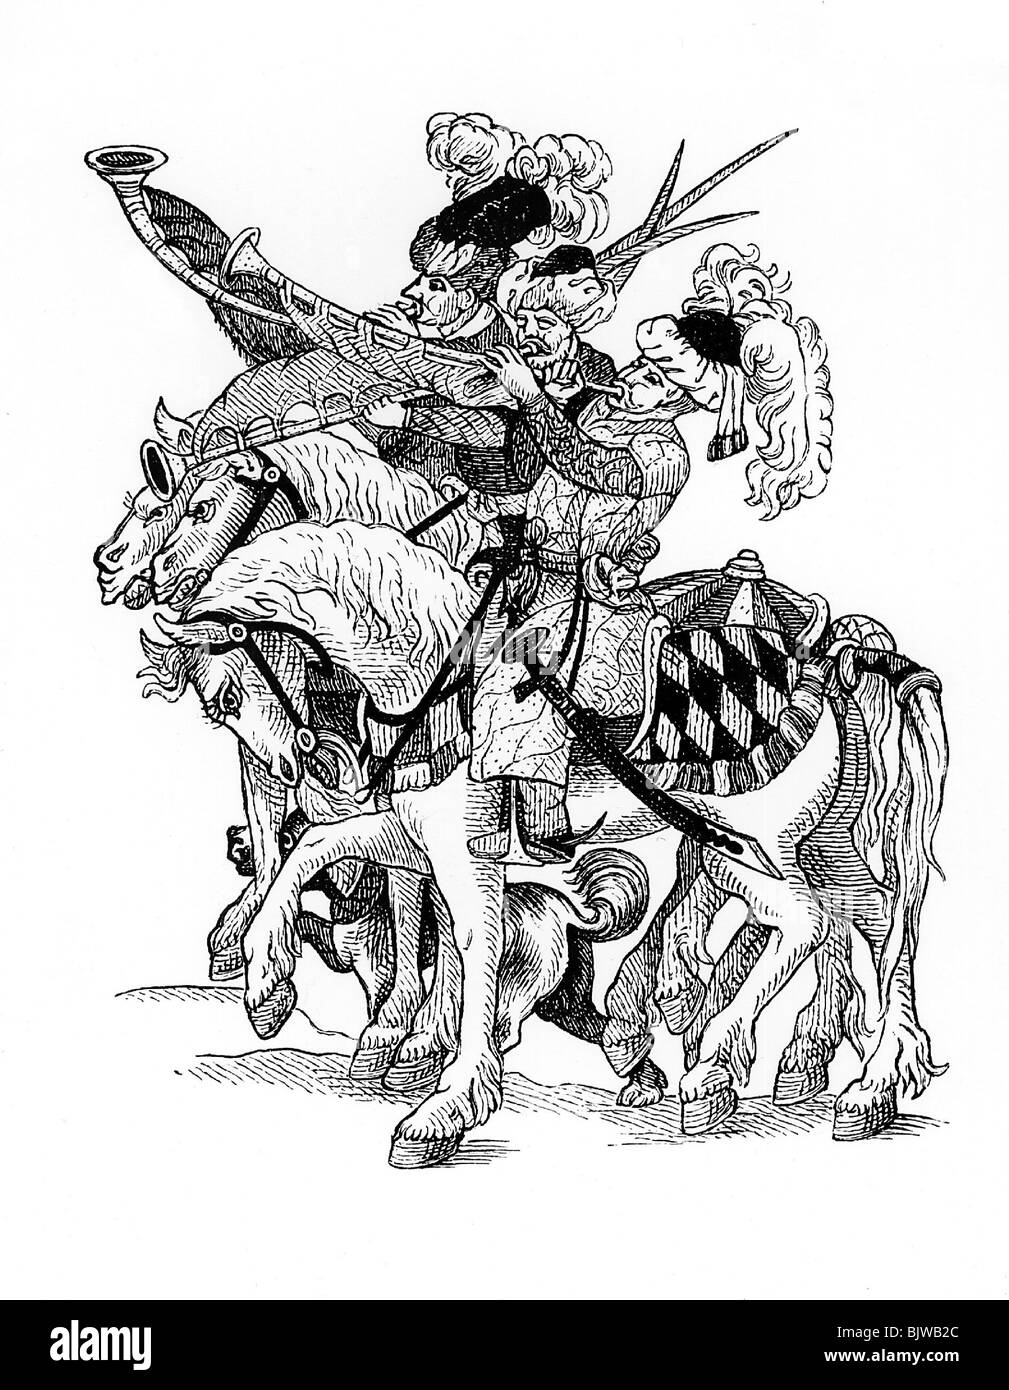 military, Ottoman Empire, Turkish mounted trumpeters, woodcut, 16th century, historic, historical, wars, war, cavalry, - Stock Image